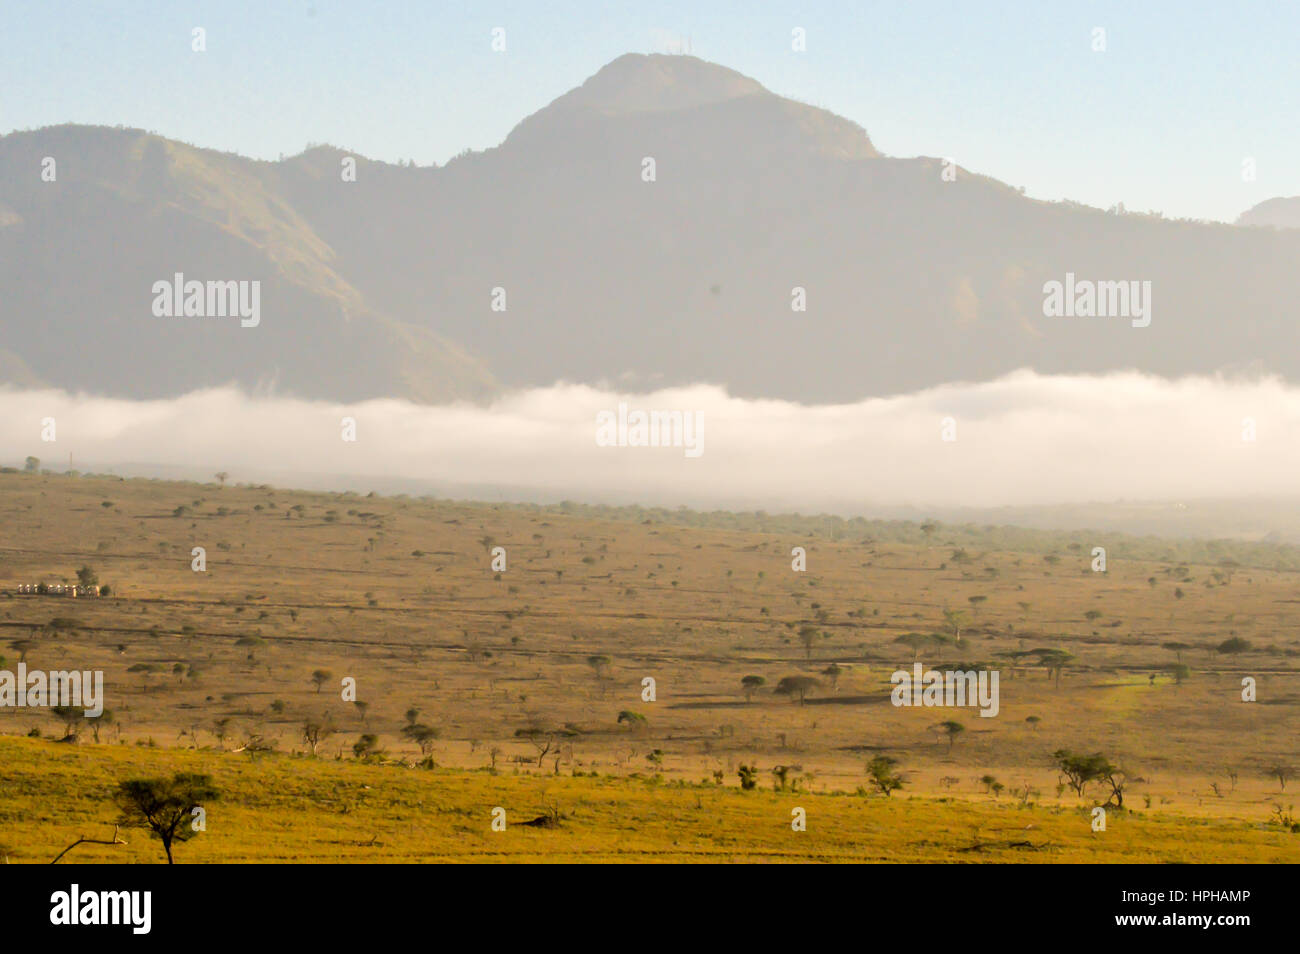 Photo tour of the savannas and mountains of South Africa 94